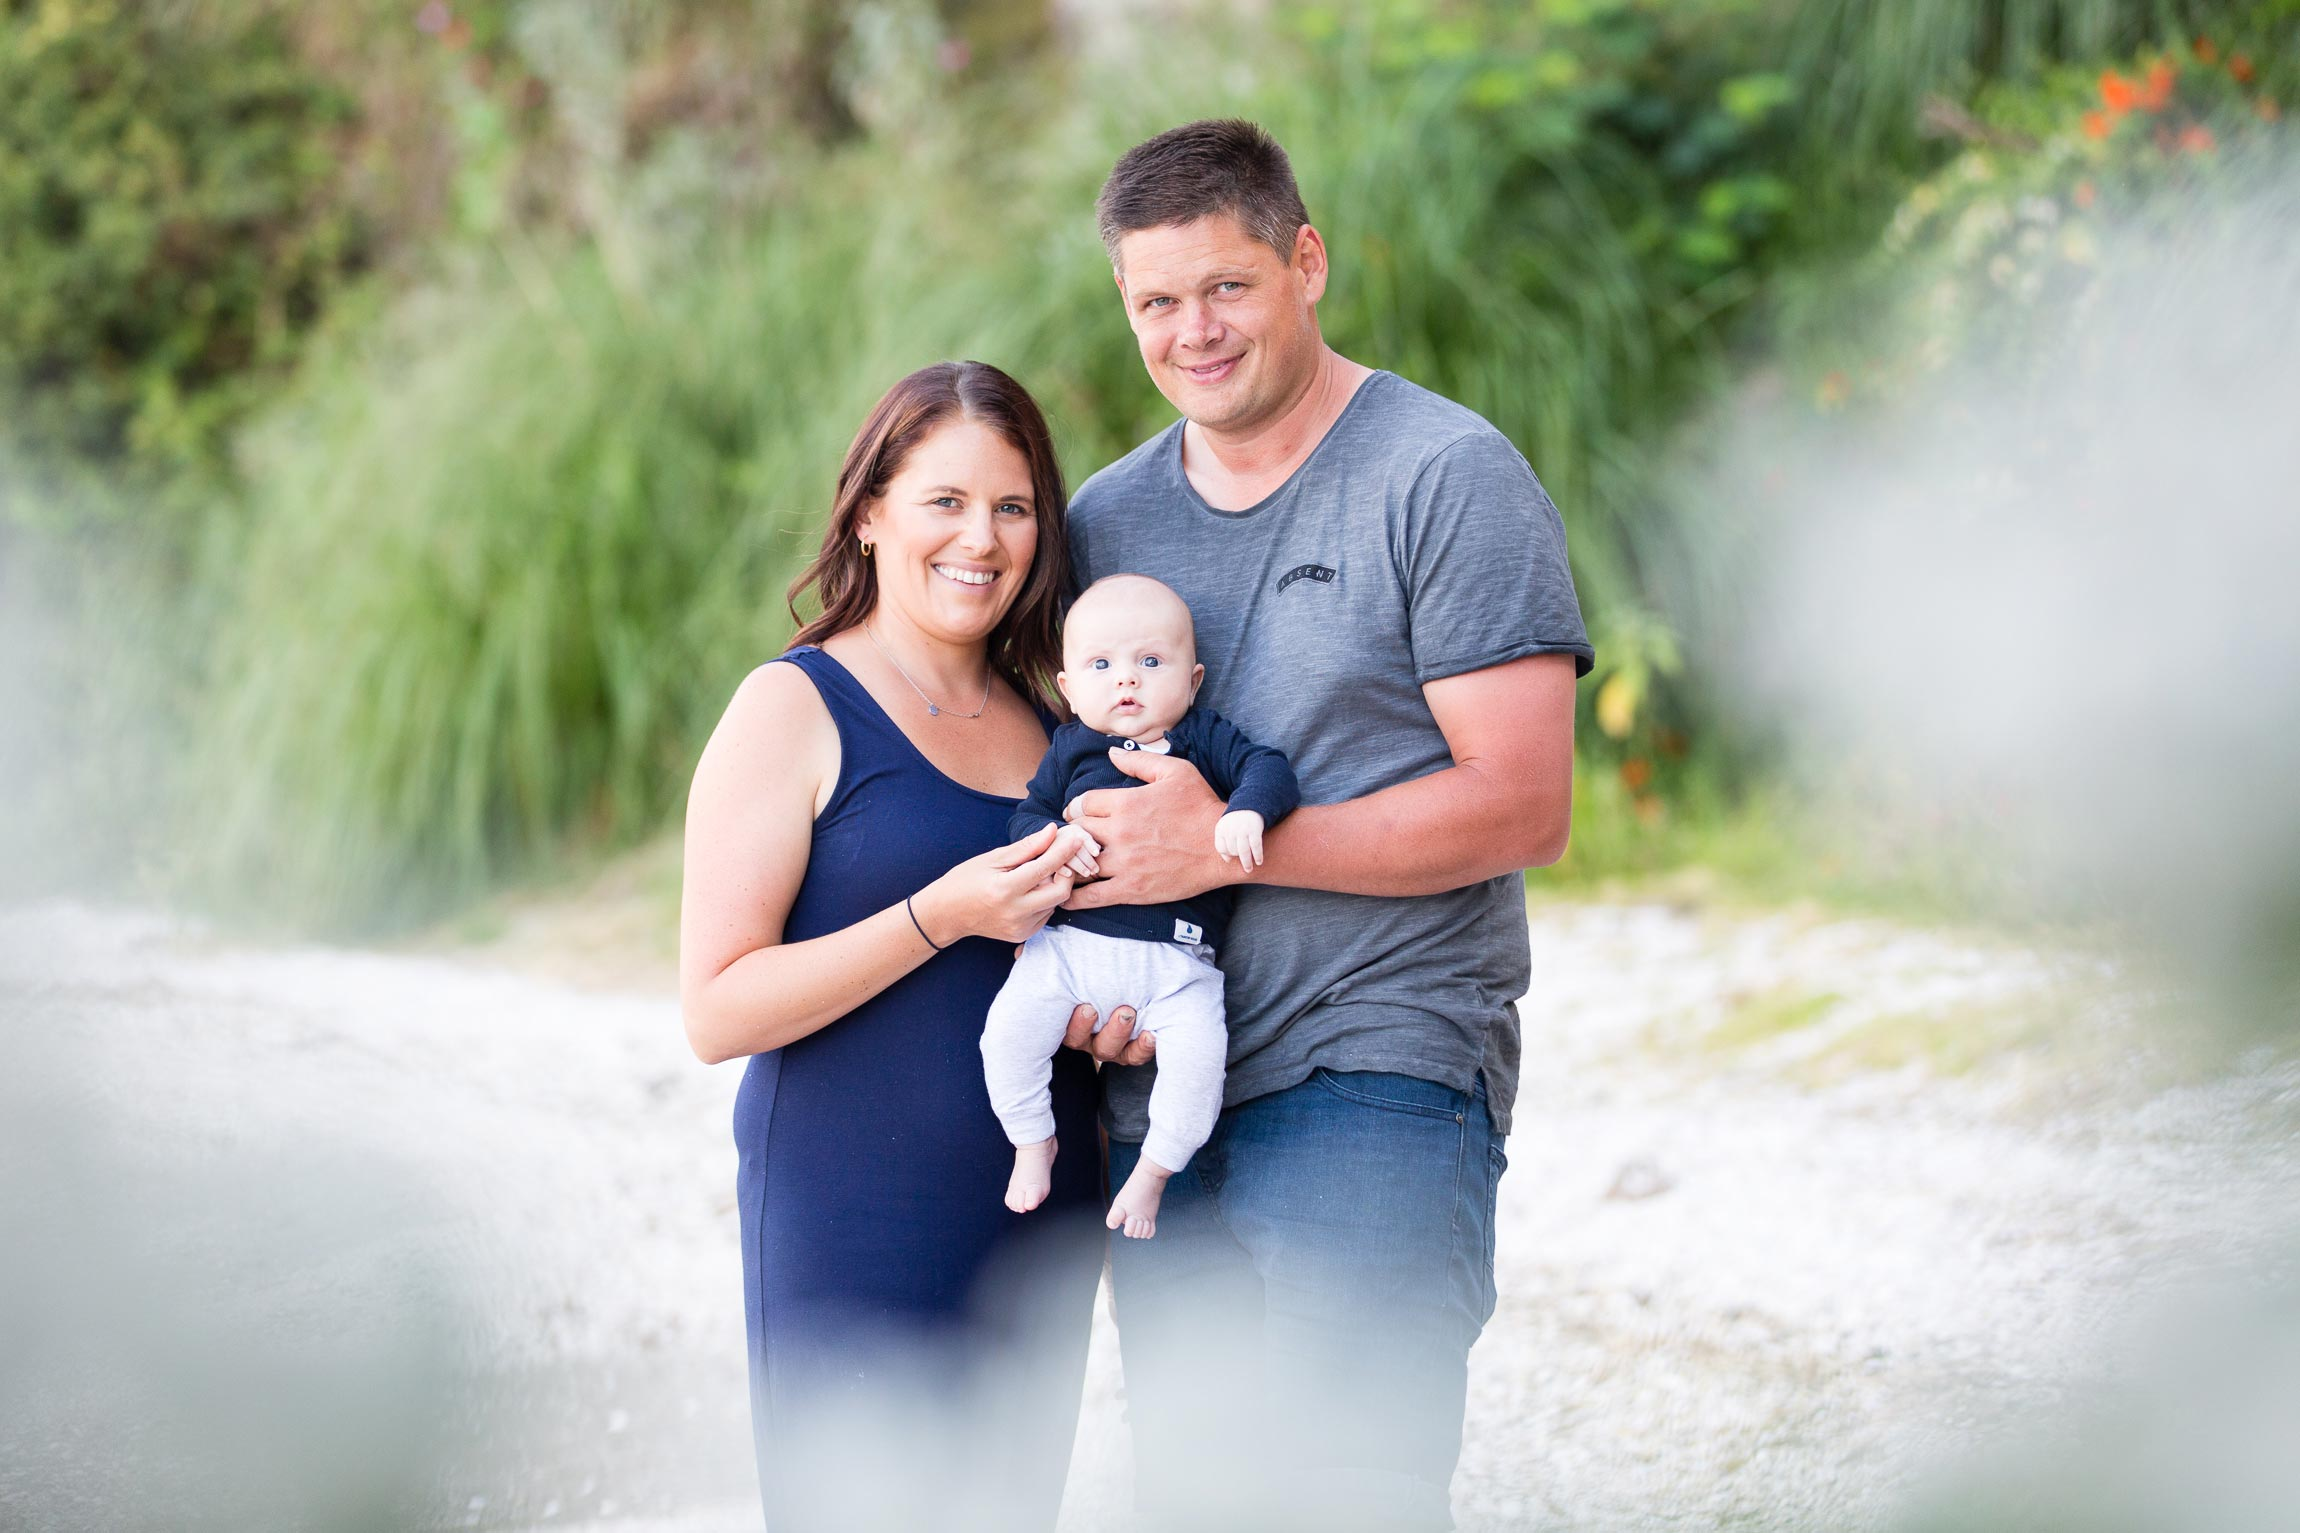 L&G Images Auckland_Family_Photographer_Baby_Maternity11.jpg